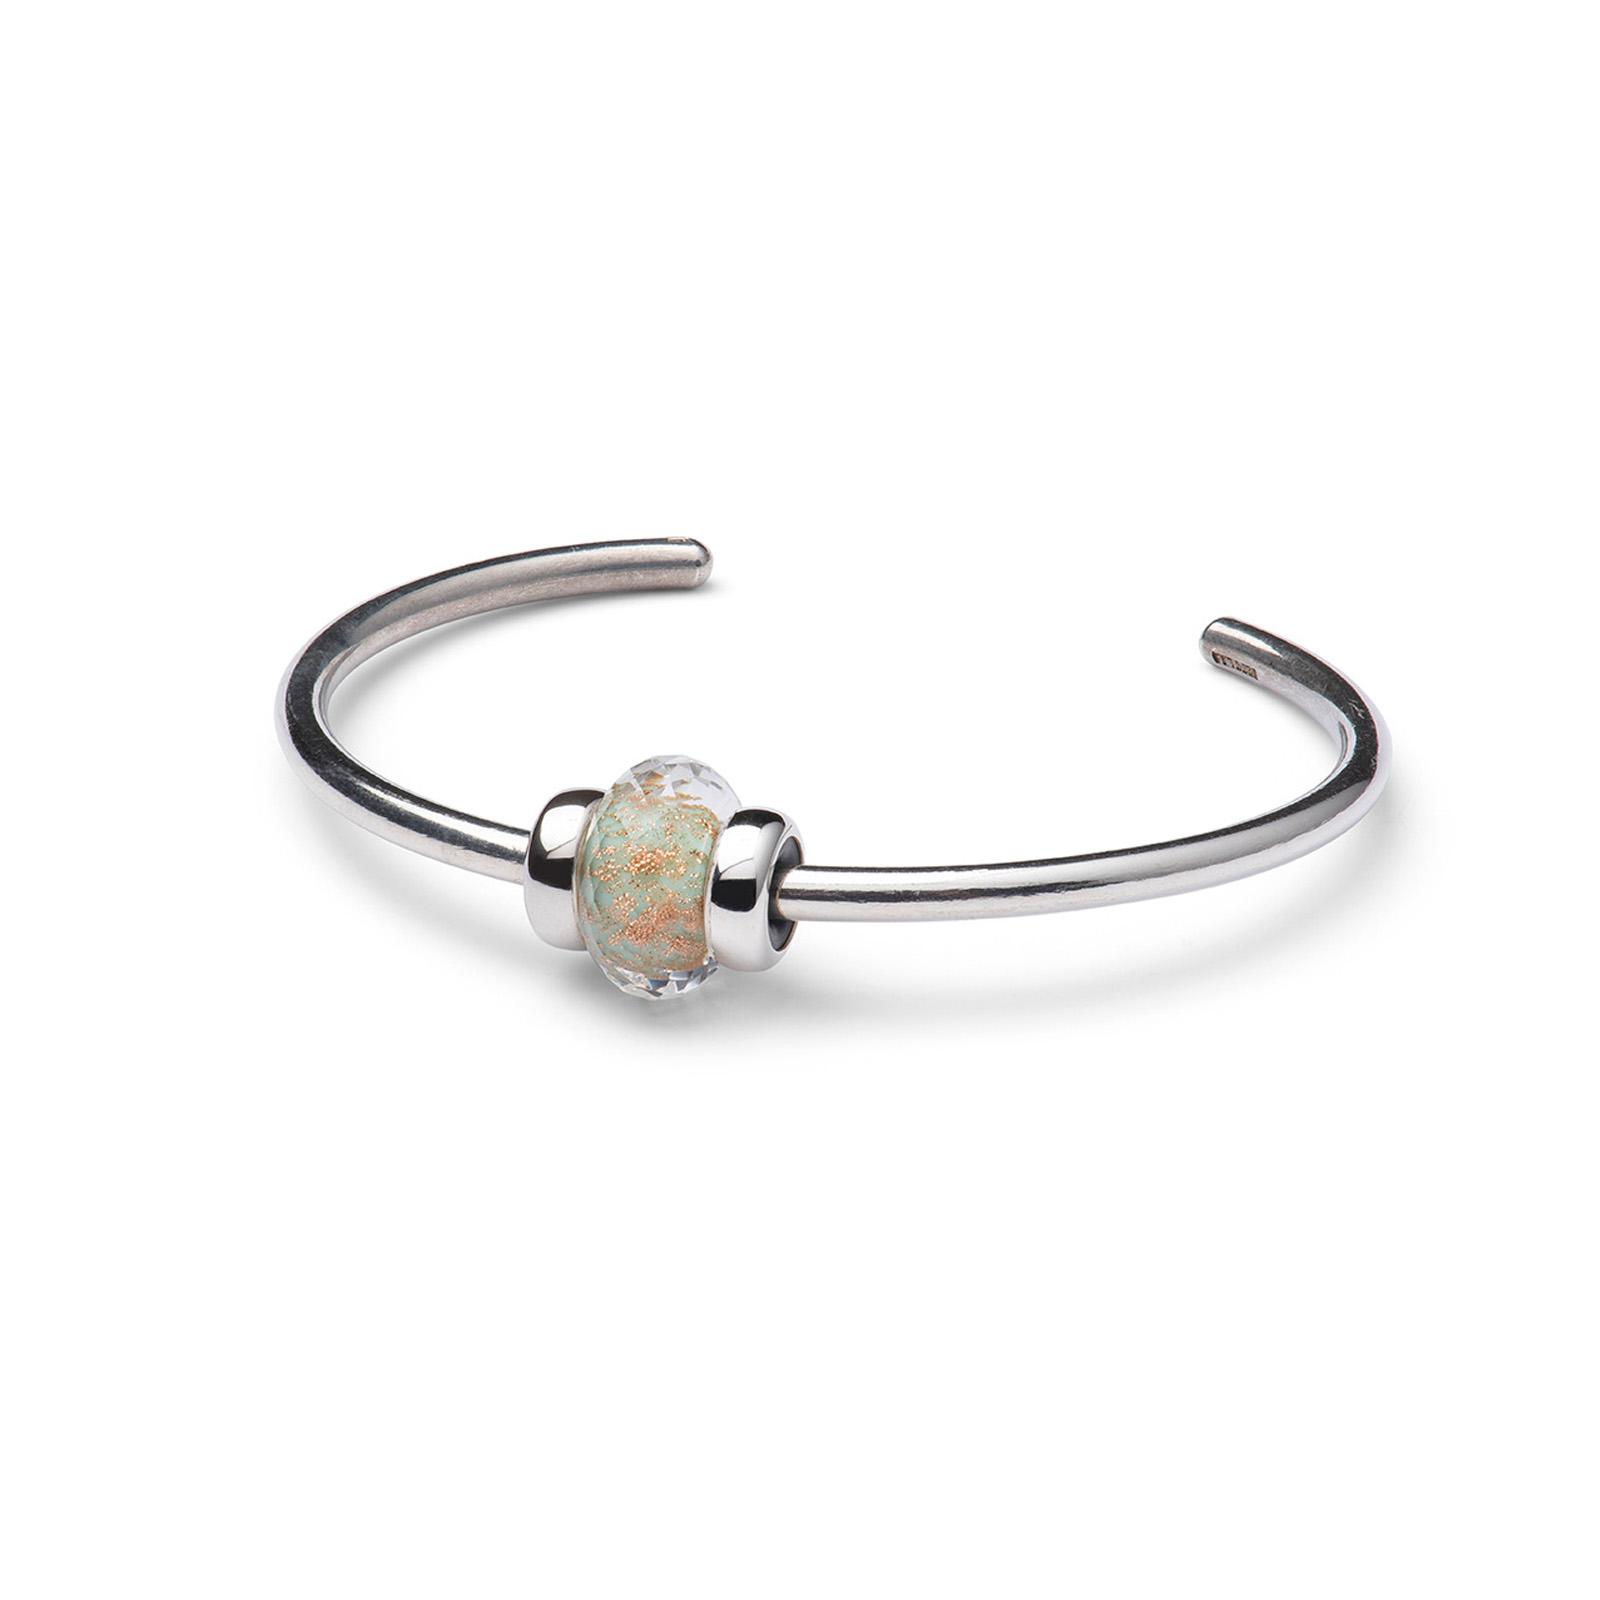 Trollbeads - New Wisdom Bangle A